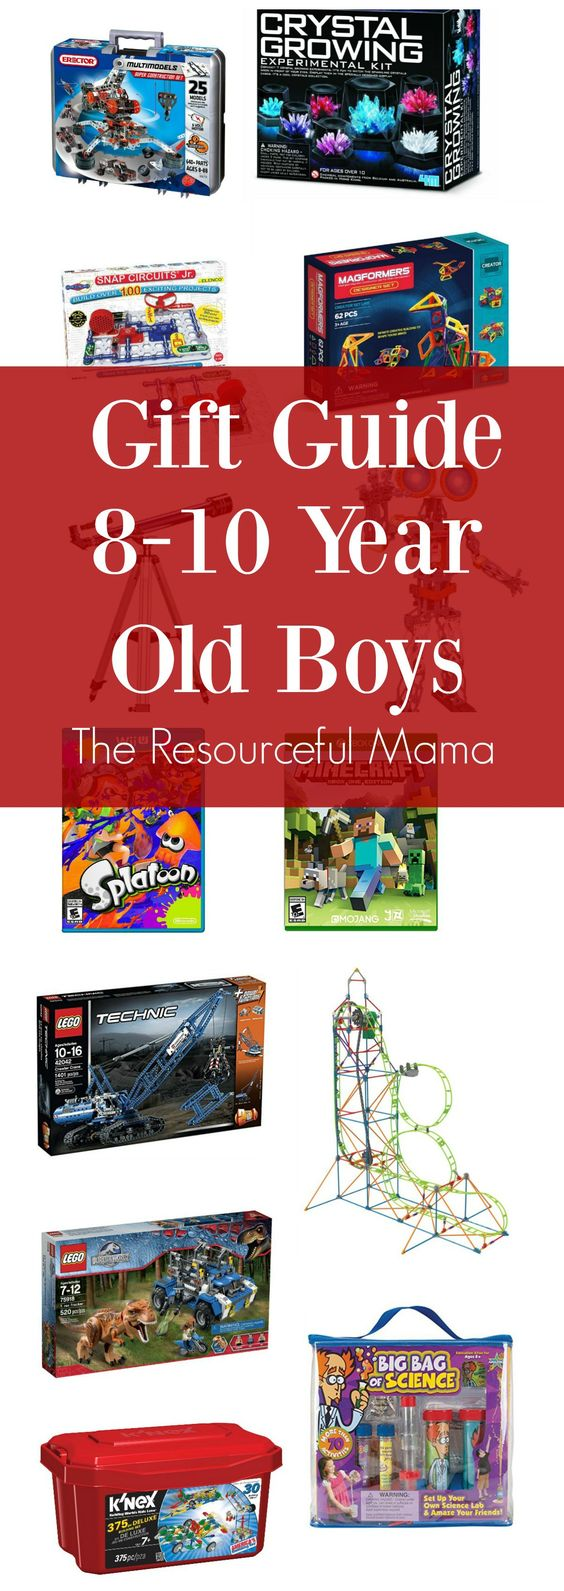 Gift guide, Old boys and Year old on Pinterest